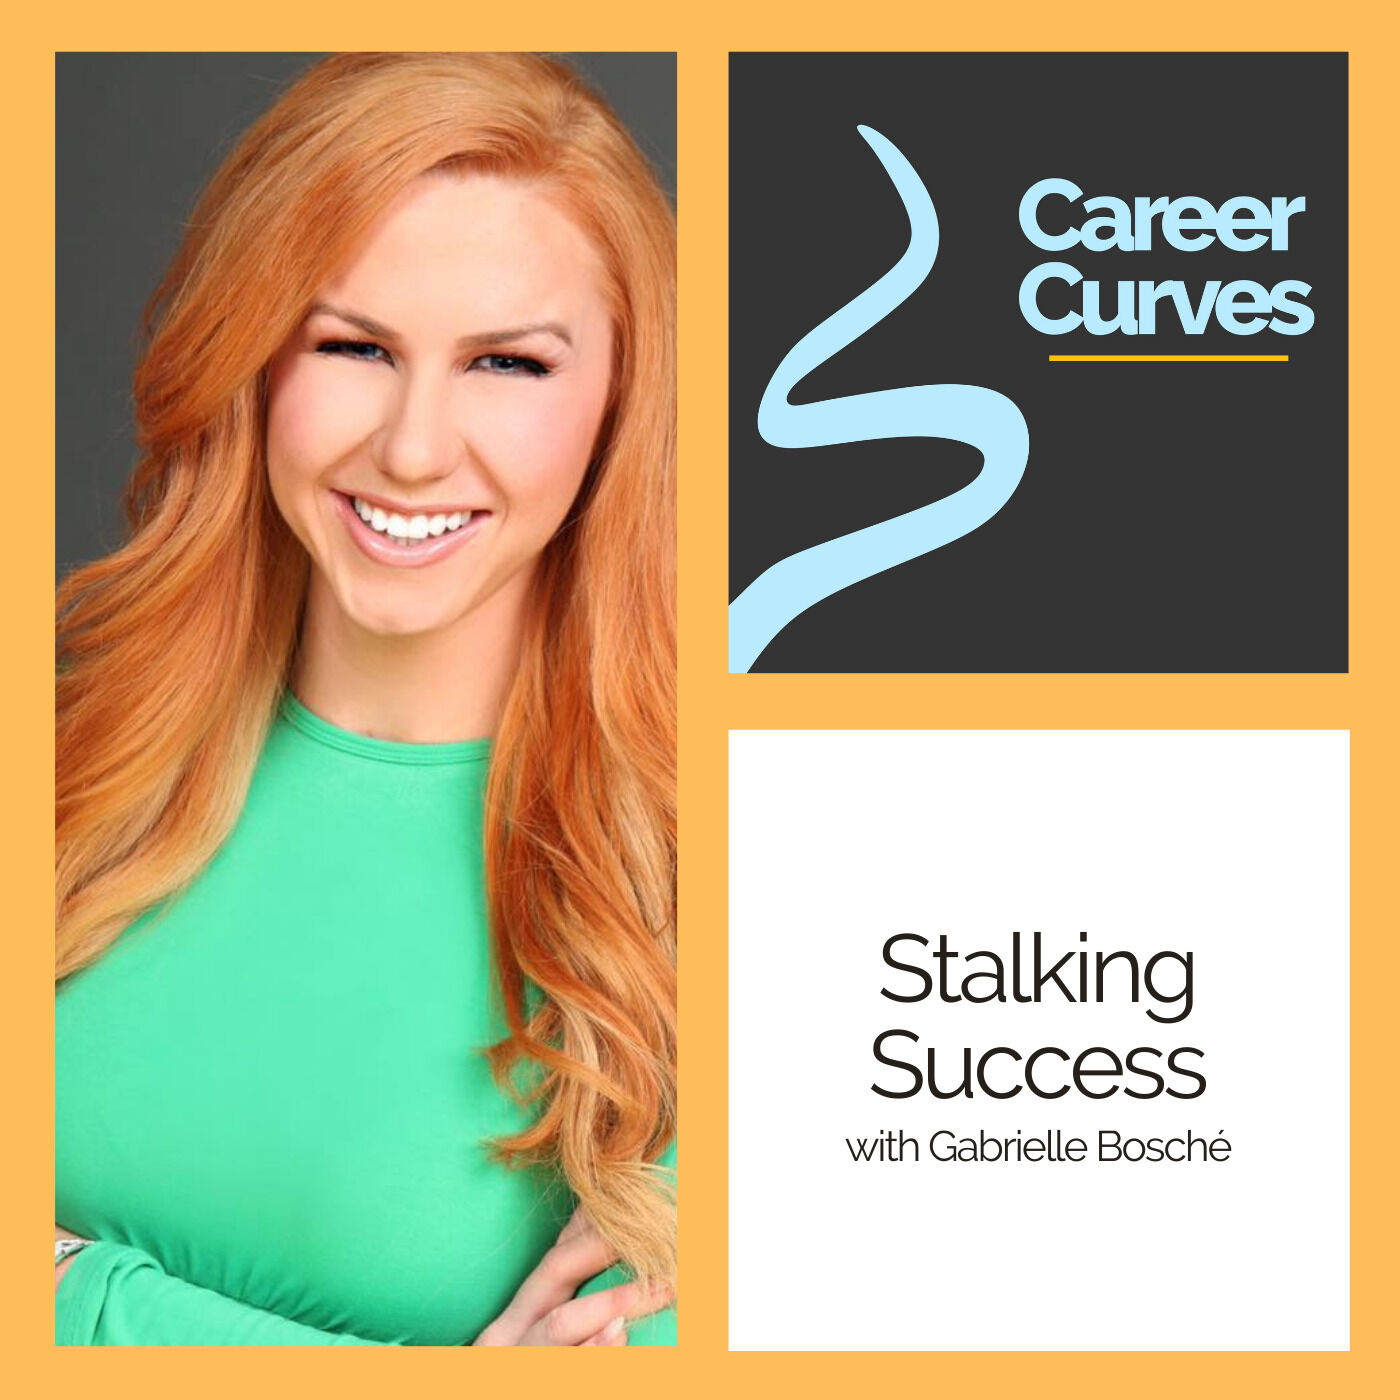 Stalking Success with Gabrielle Bosché